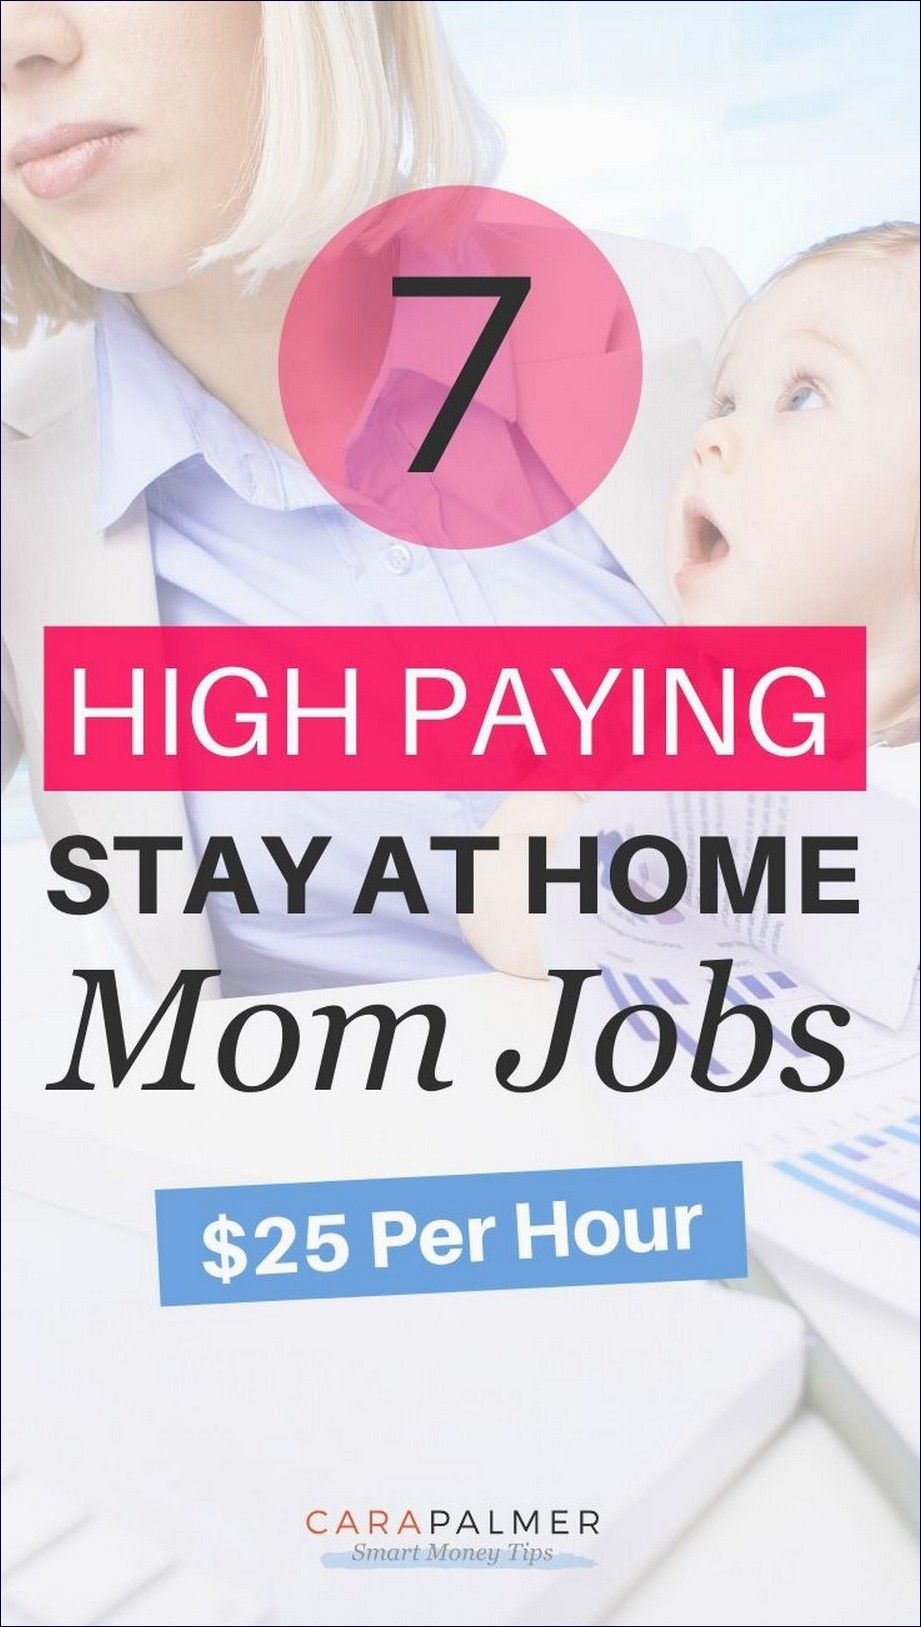 Make Money From Home Bangalore July 11 2020 At 06 06pm Make Money From Home Bangalore Stuck At Home Mom Jobs Legitimate Online Jobs Earn Extra Money Online